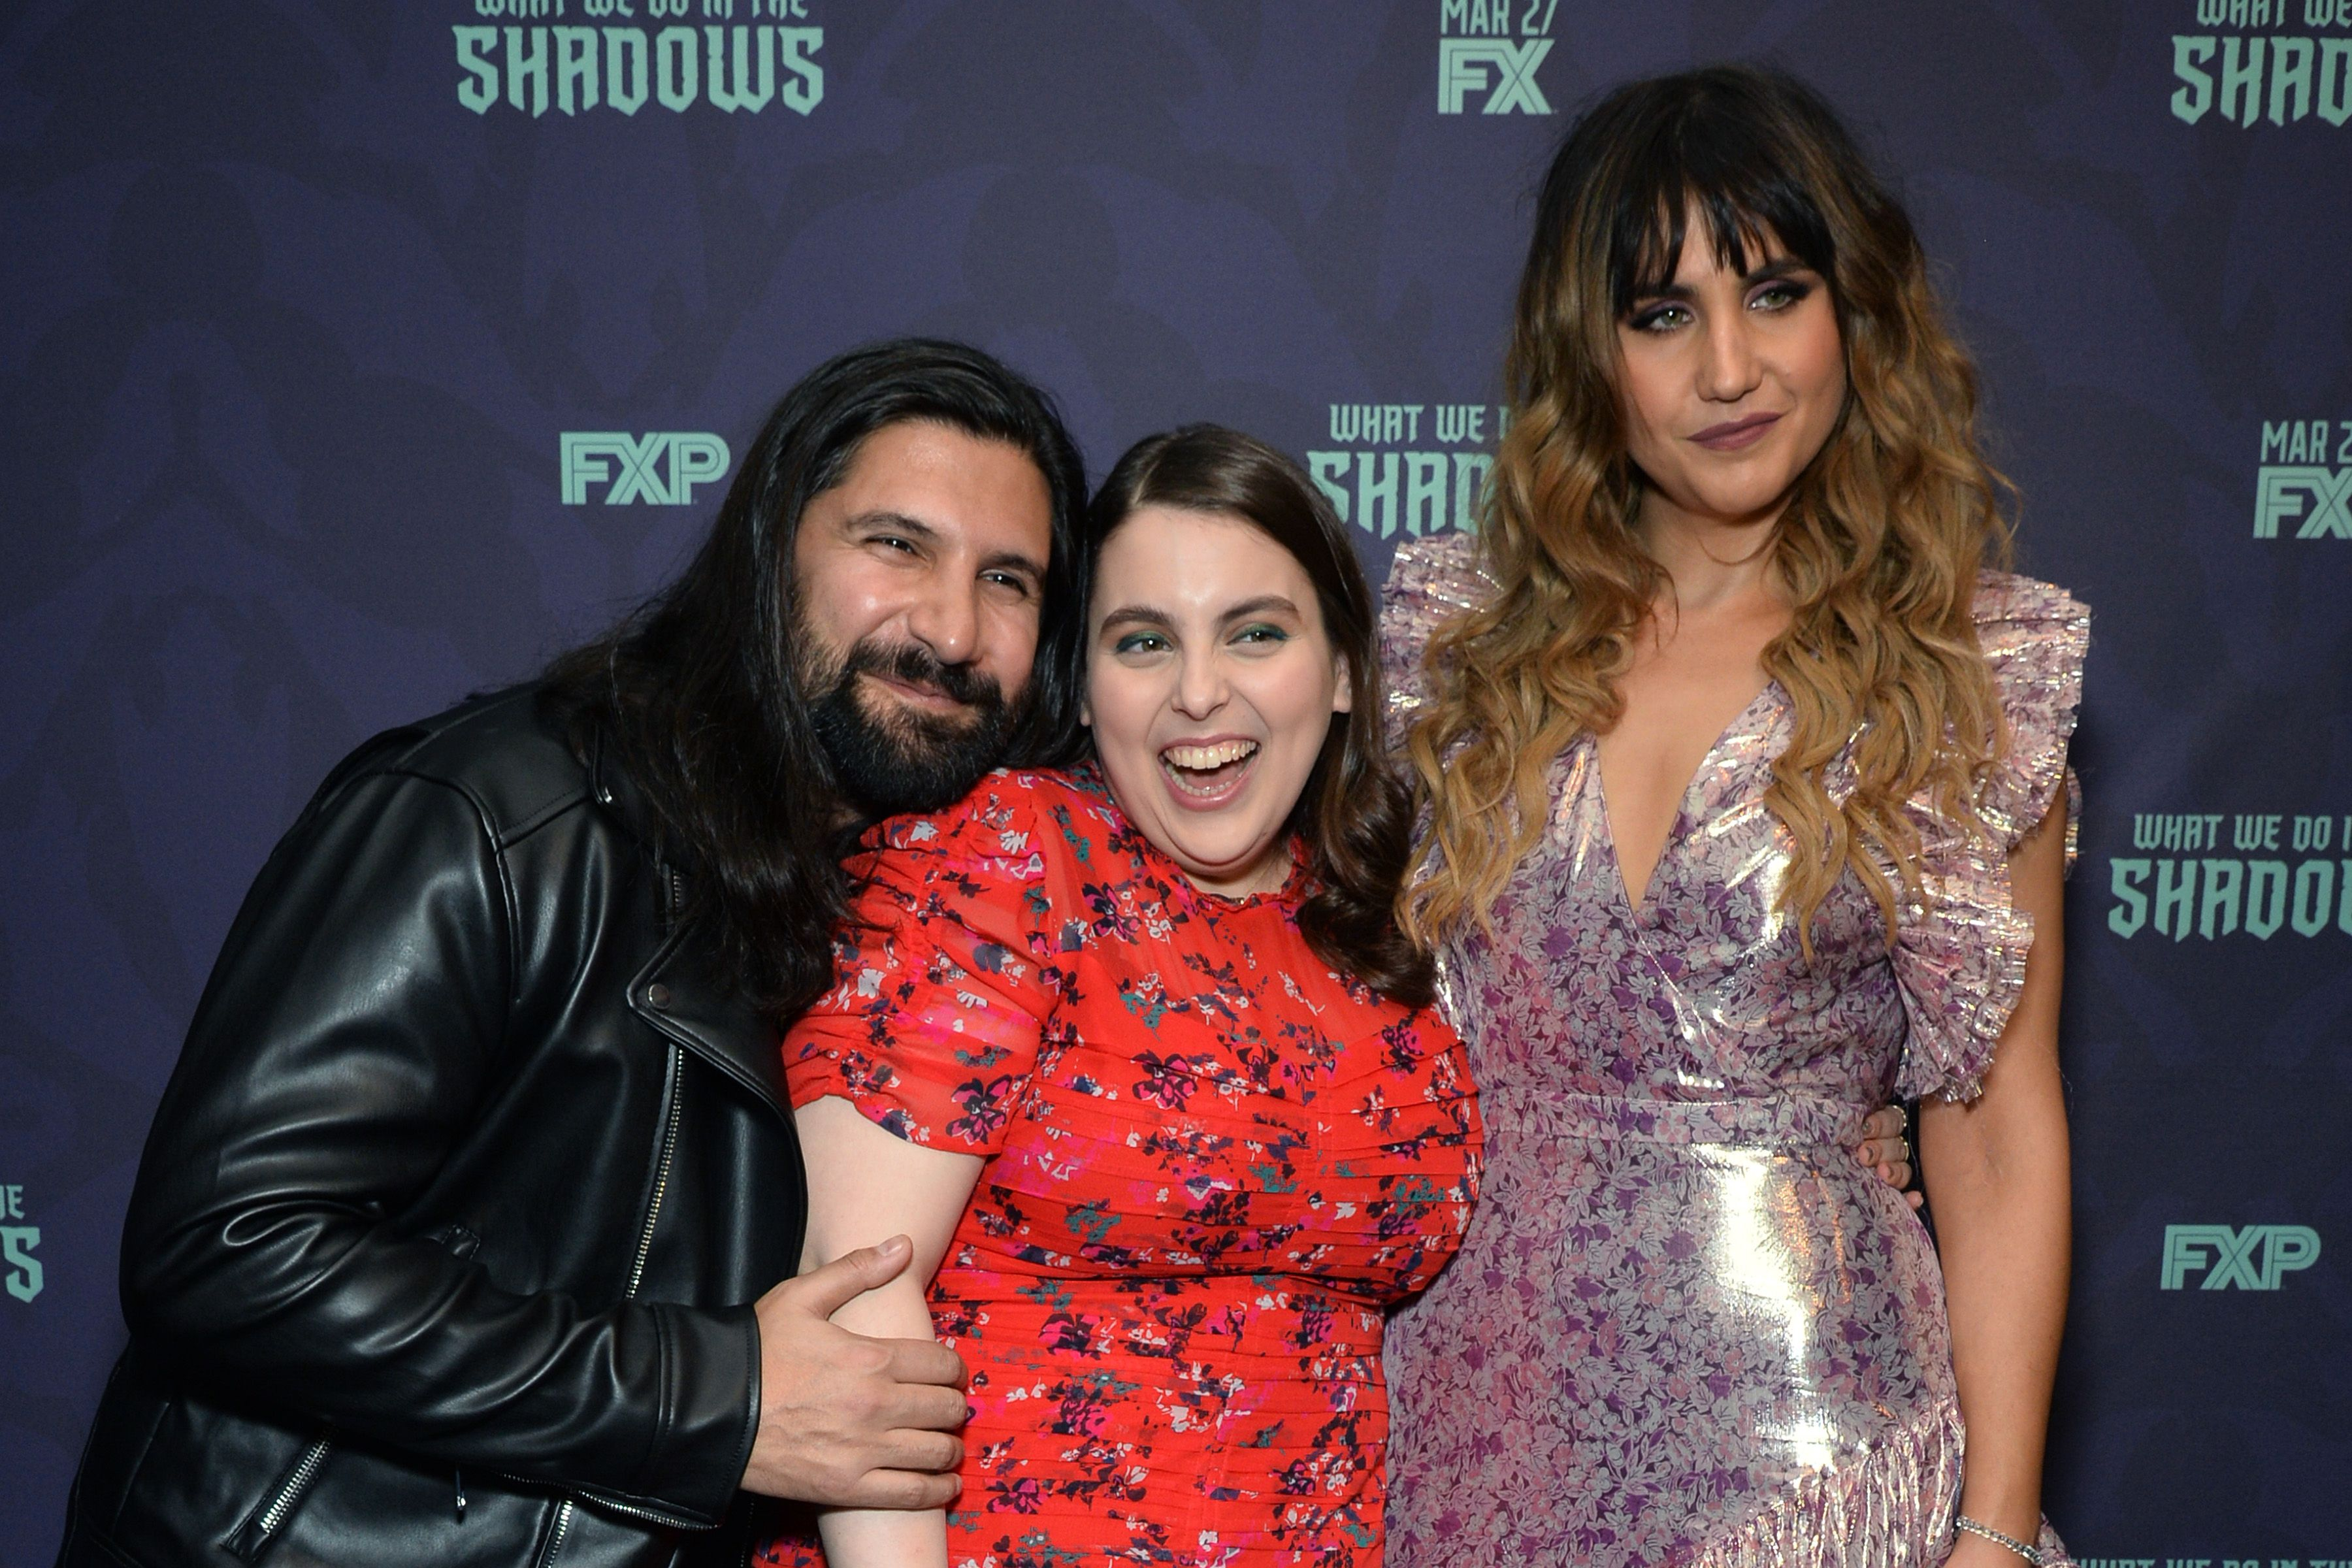 Behind the Scenes at the What We Do in the Shadows Premiere